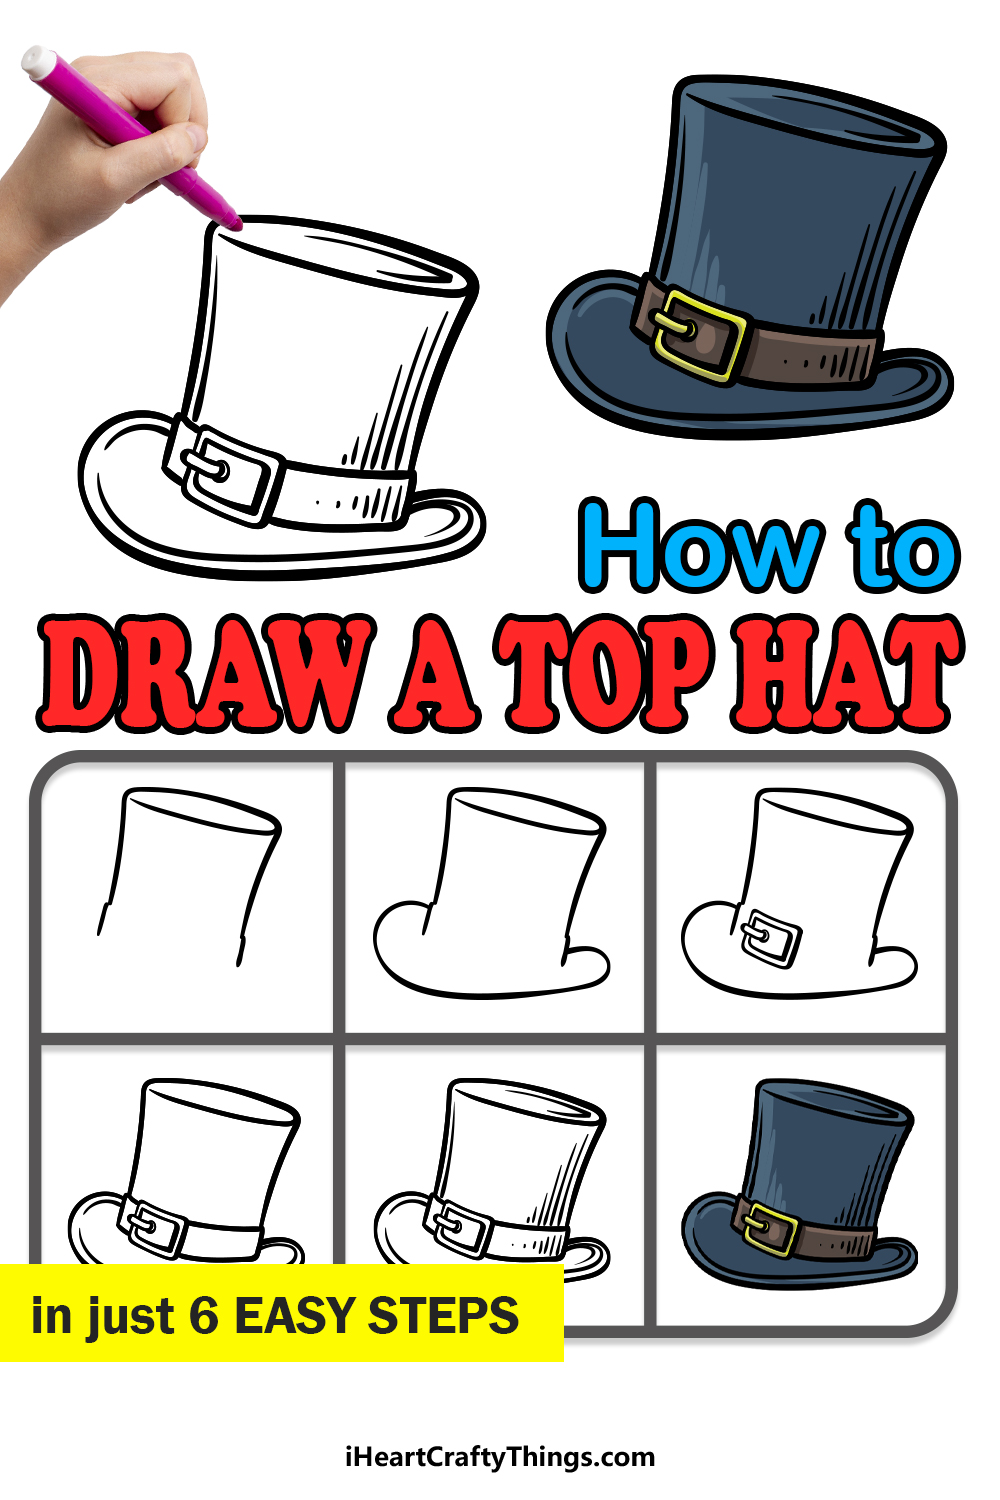 how to draw a top hat in 6 easy steps